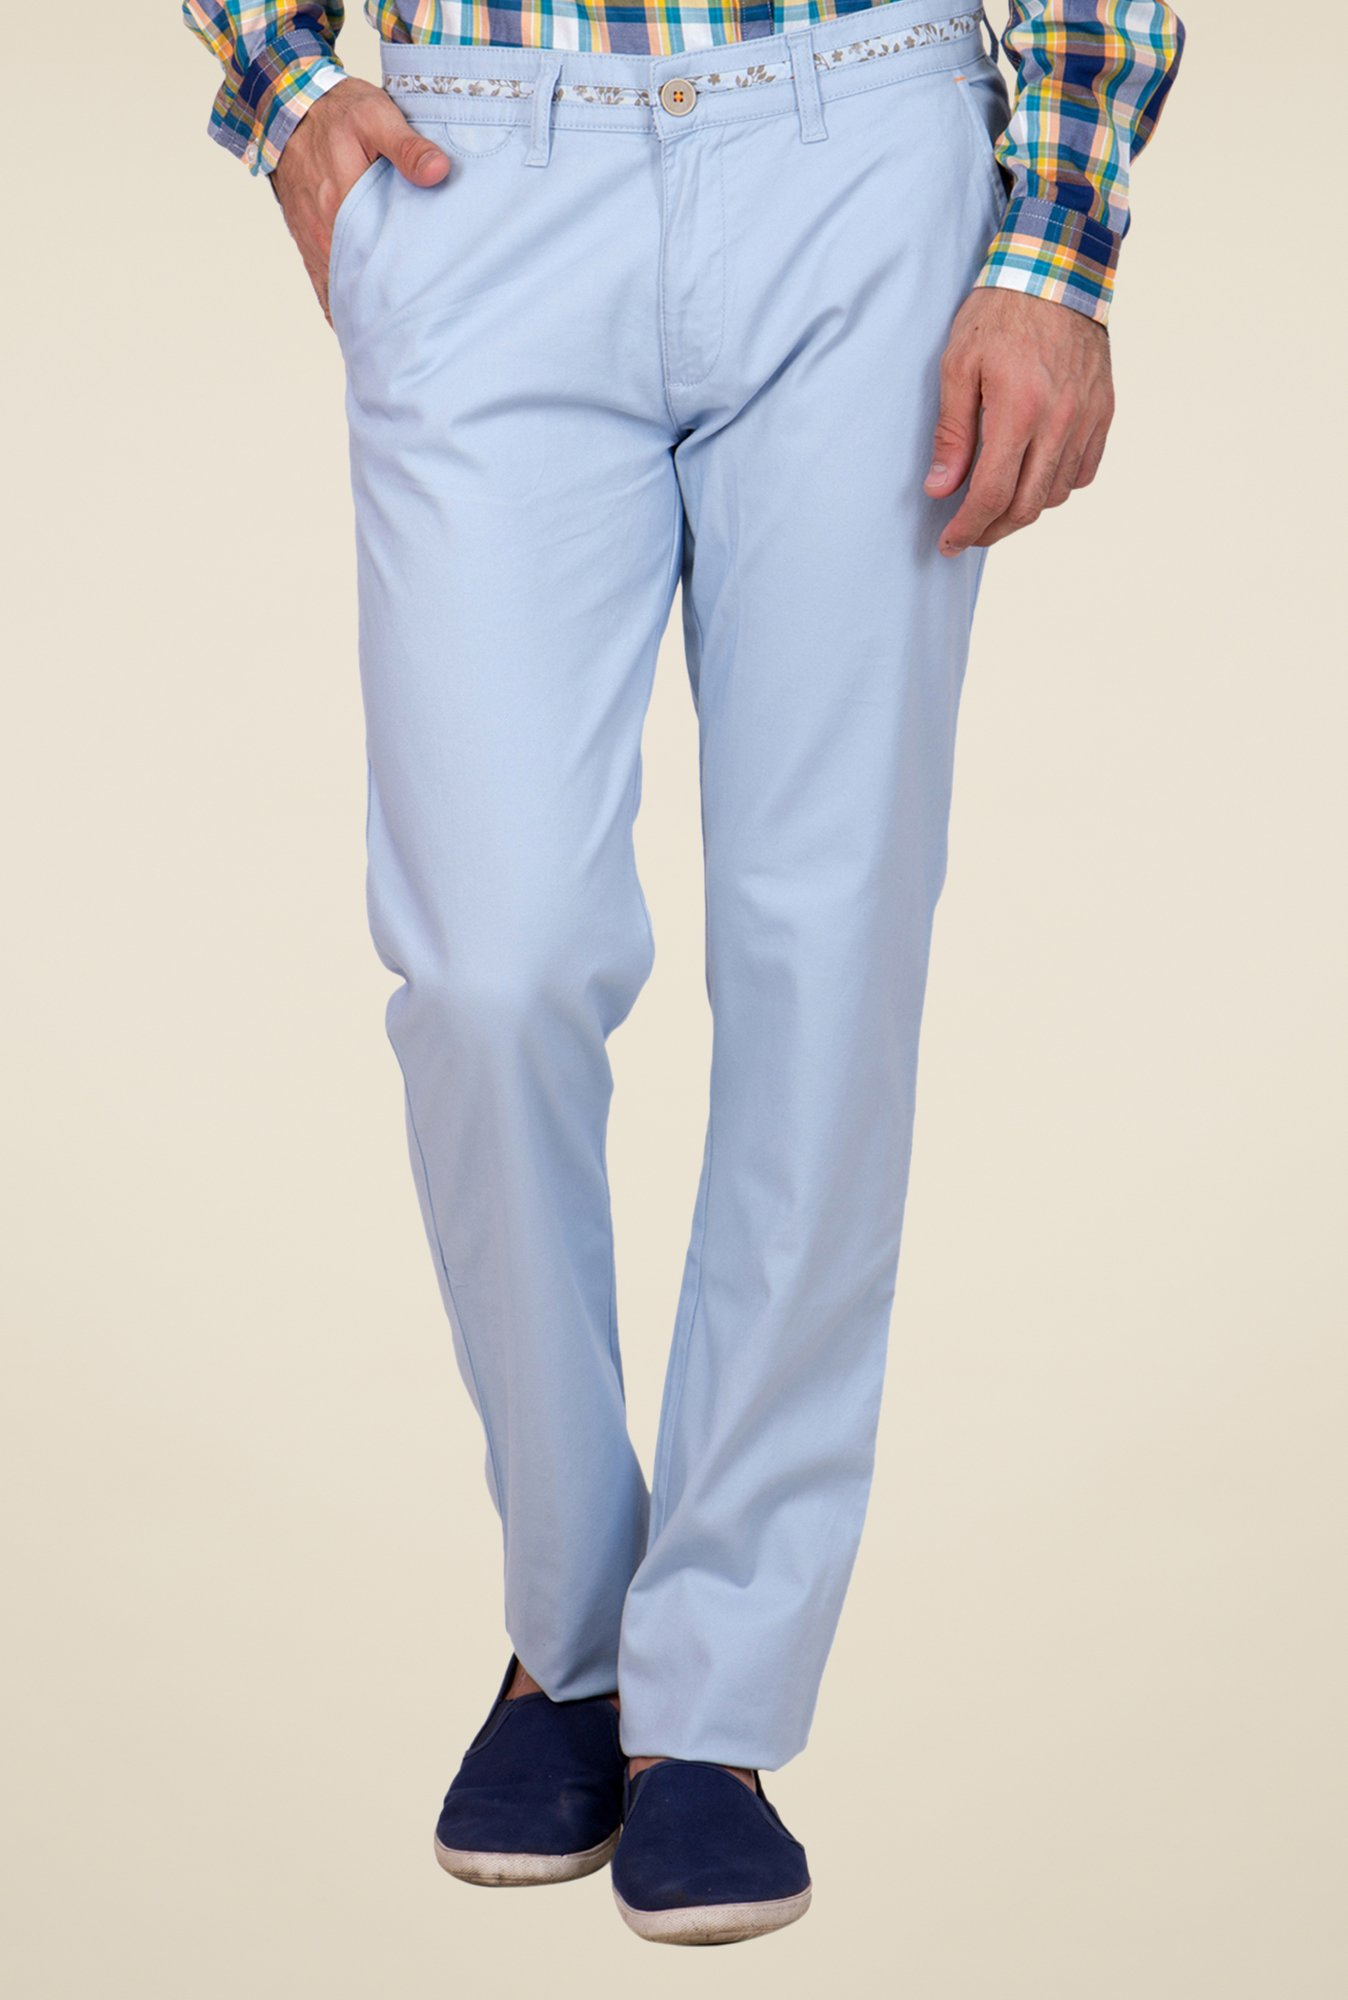 United Colors of Benetton Sky Blue Solid Chinos